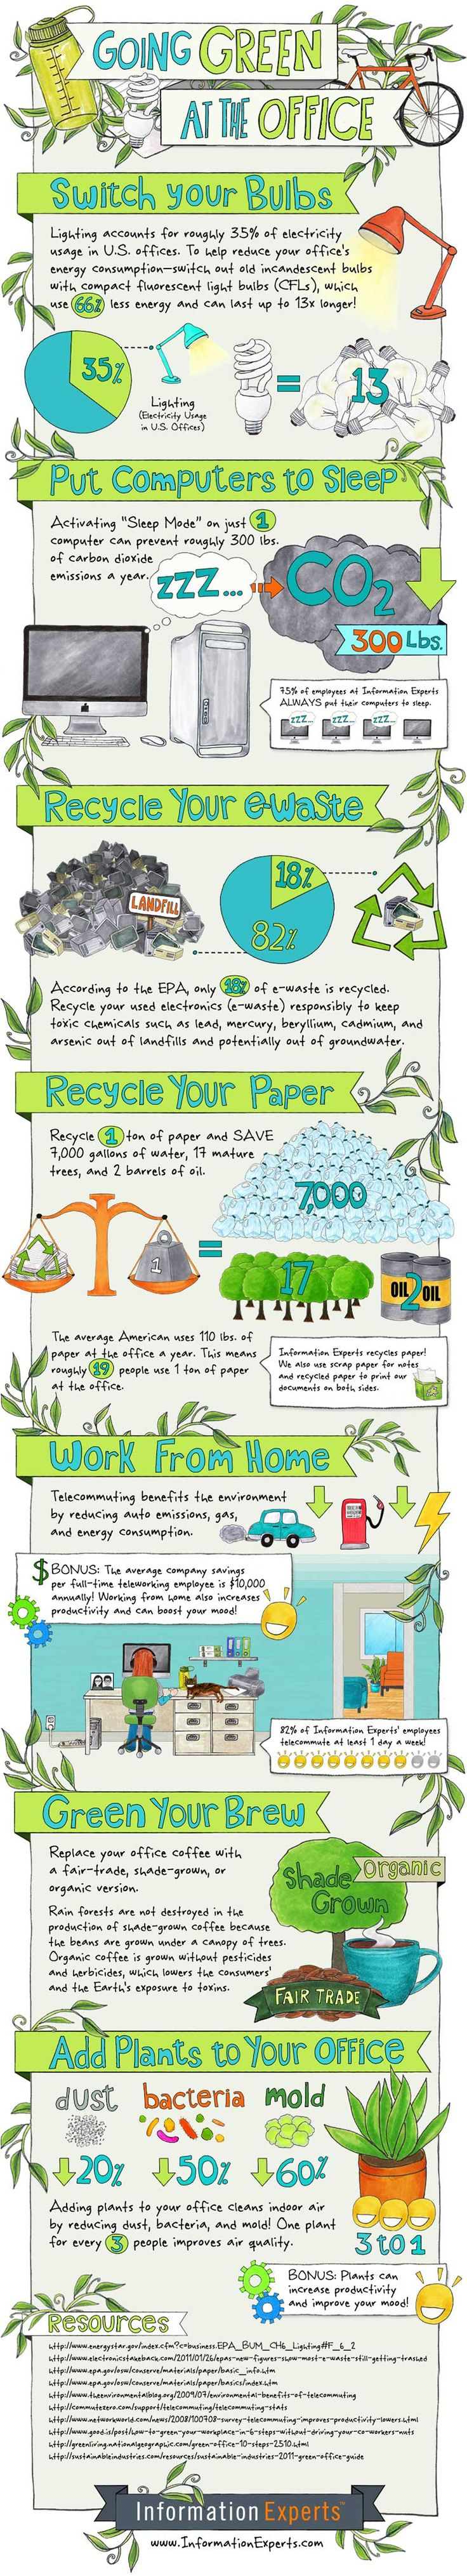 Going Green At The Office [Infographic]